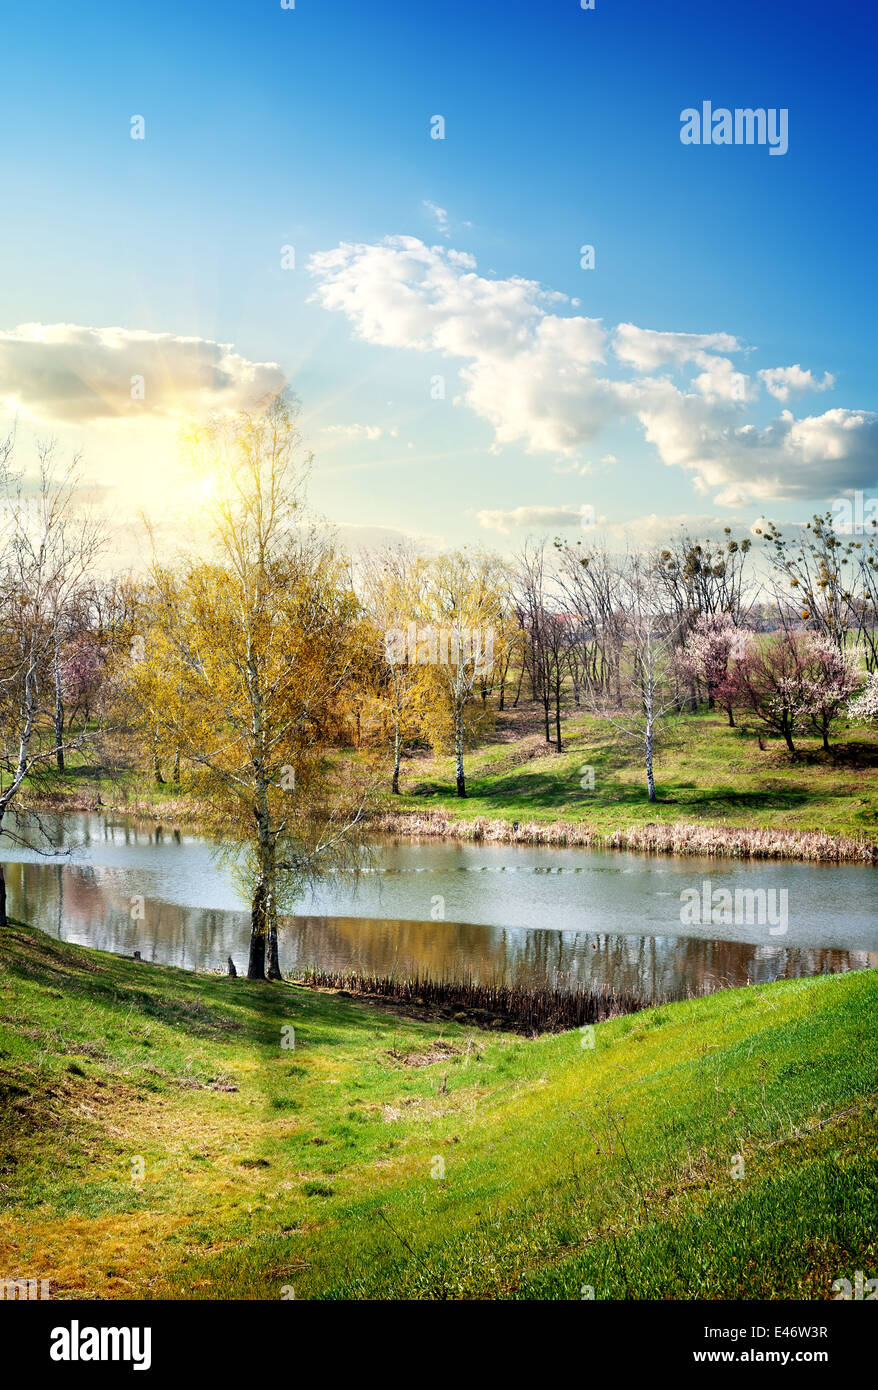 Beautiful river and blue sky in early spring - Stock Image